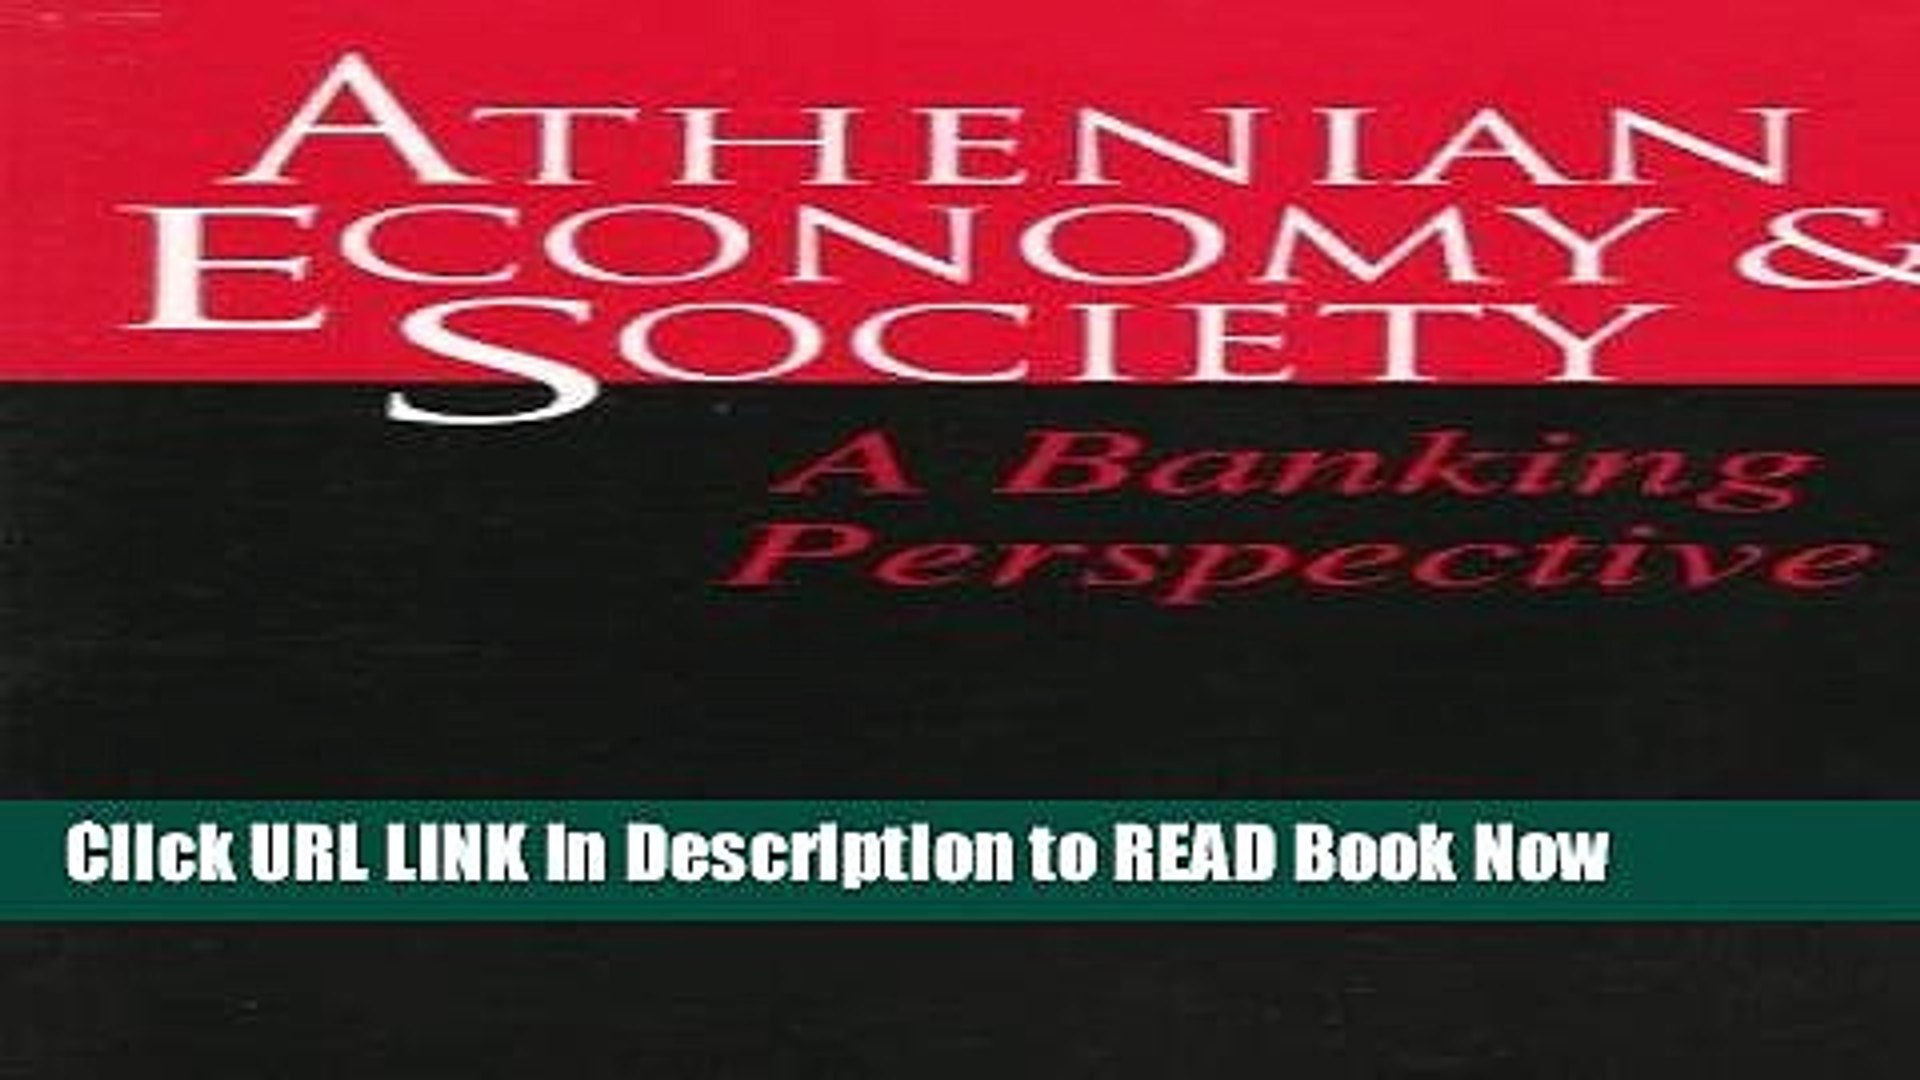 [DOWNLOAD] Athenian Economy and Society: A Banking Perspective Book Online